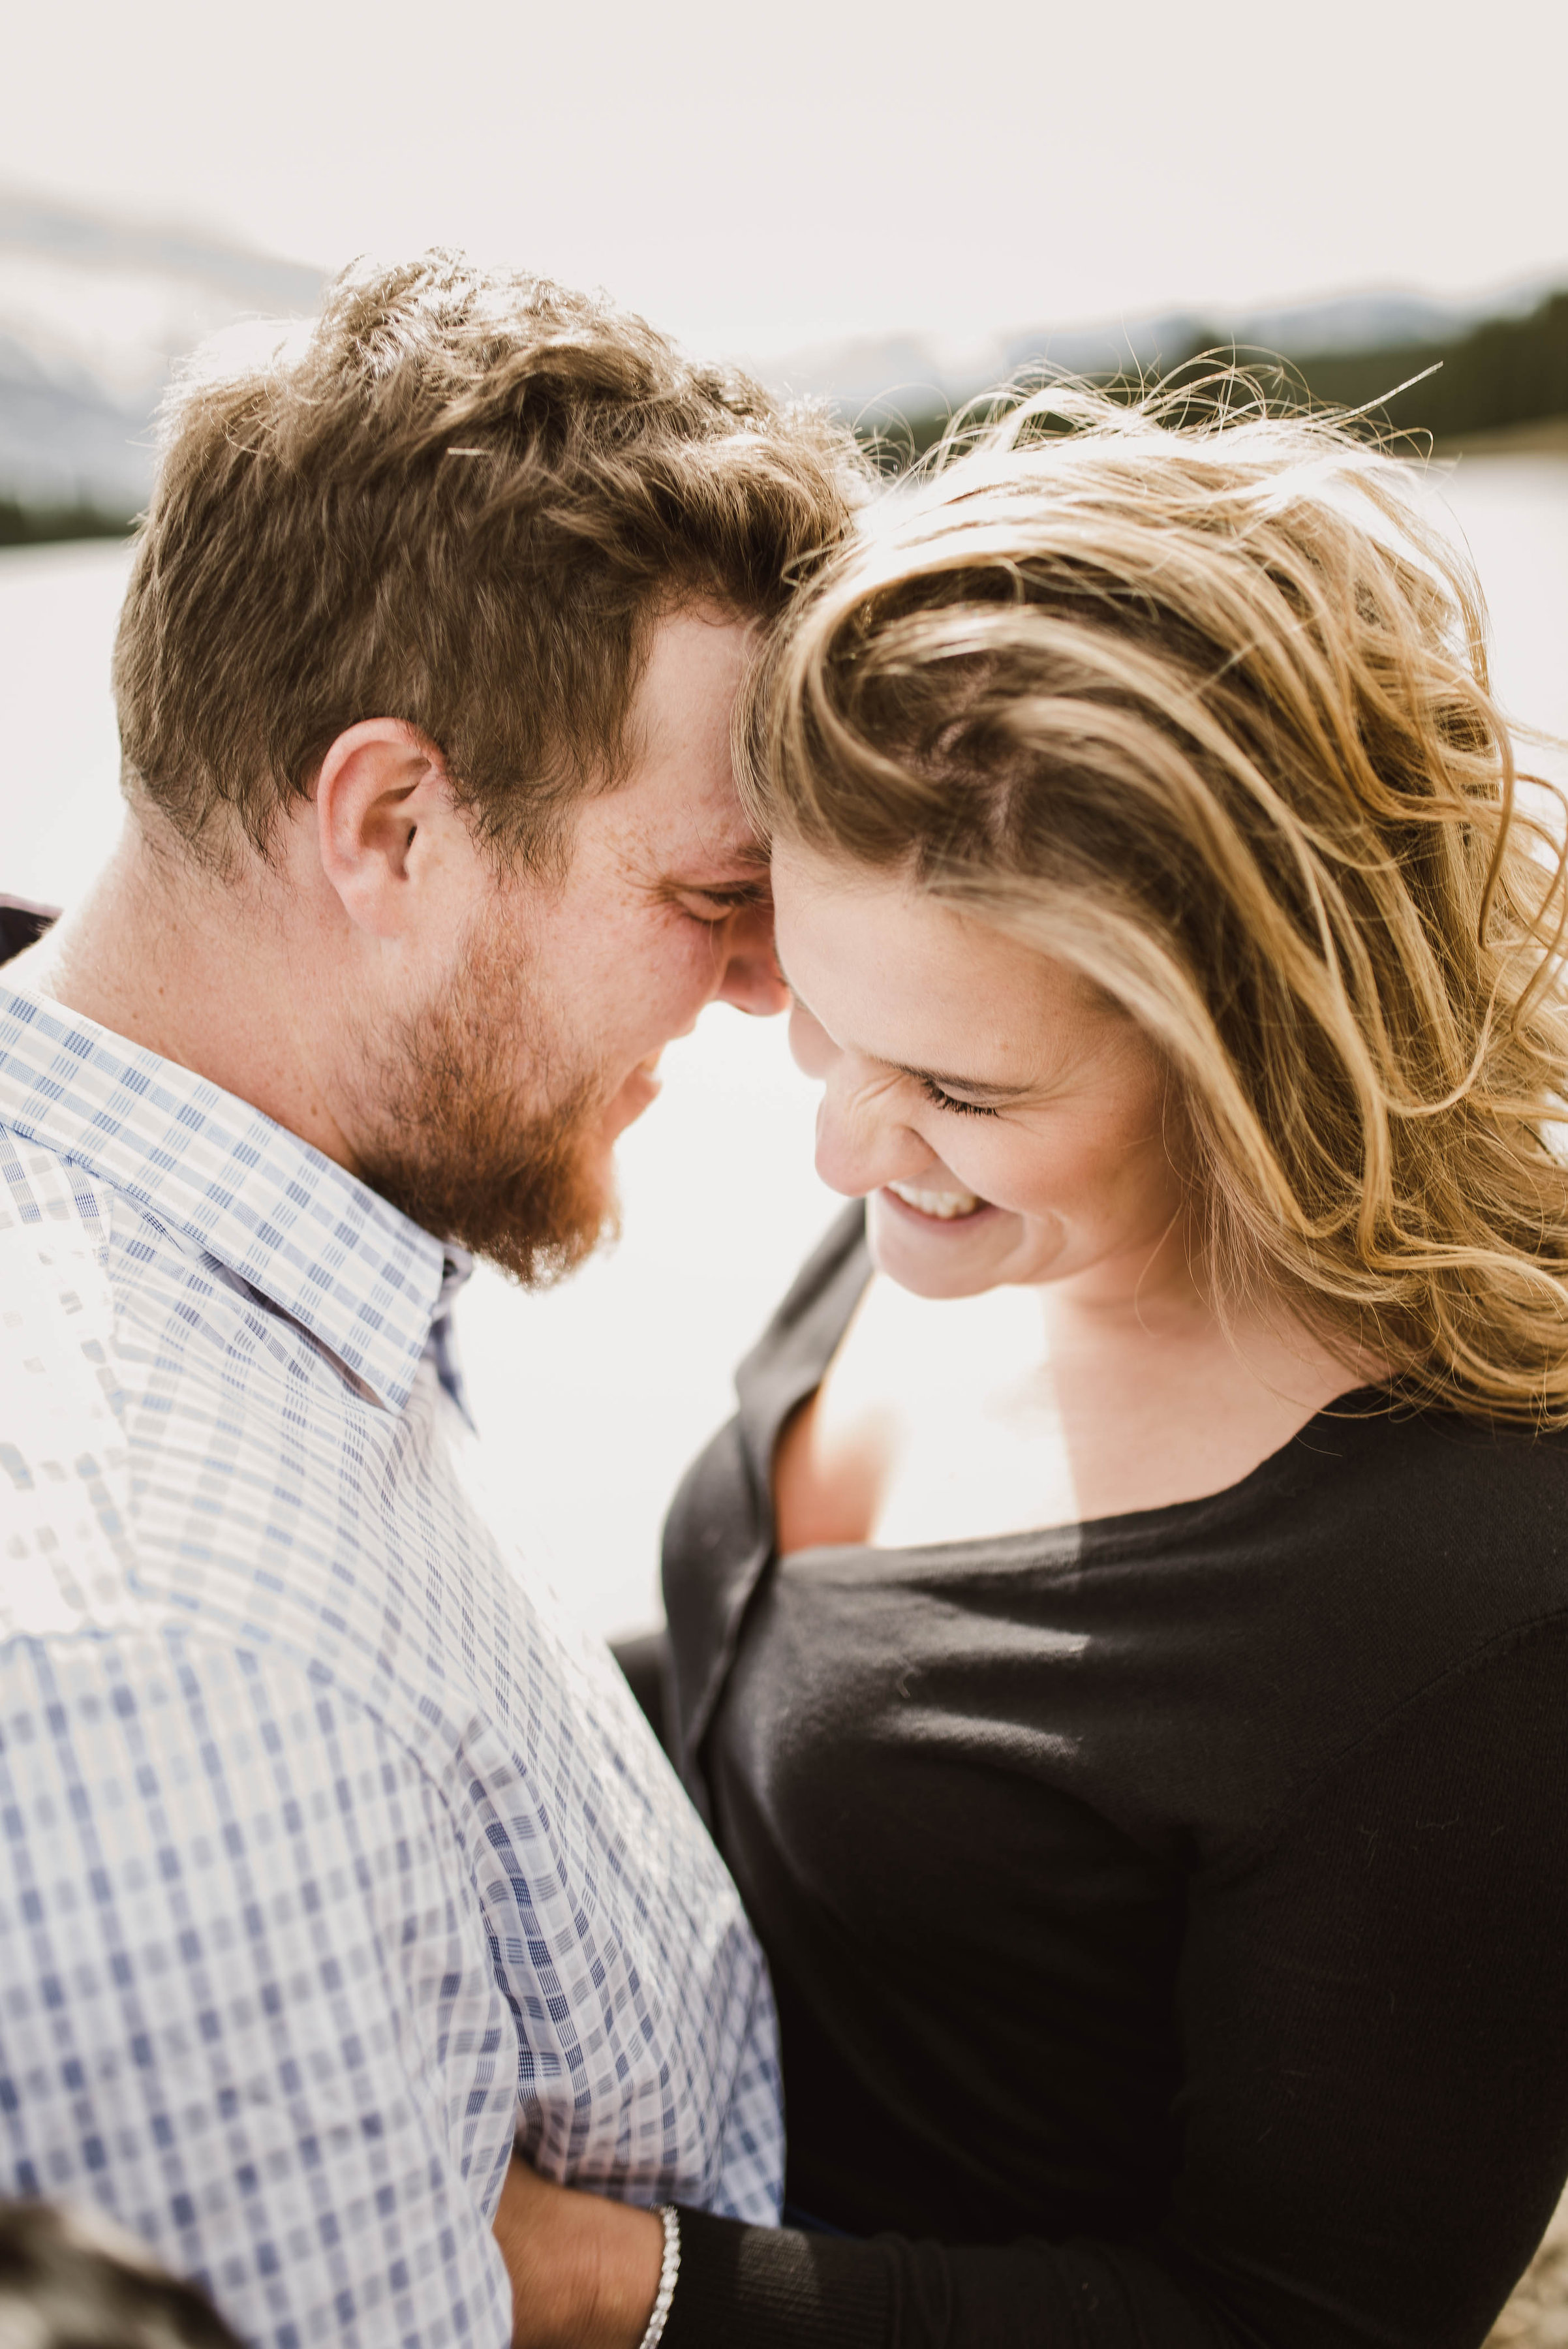 Isaiah-&-Taylor-Photography---Matt-&-Lindsay-Engagement-088.jpg